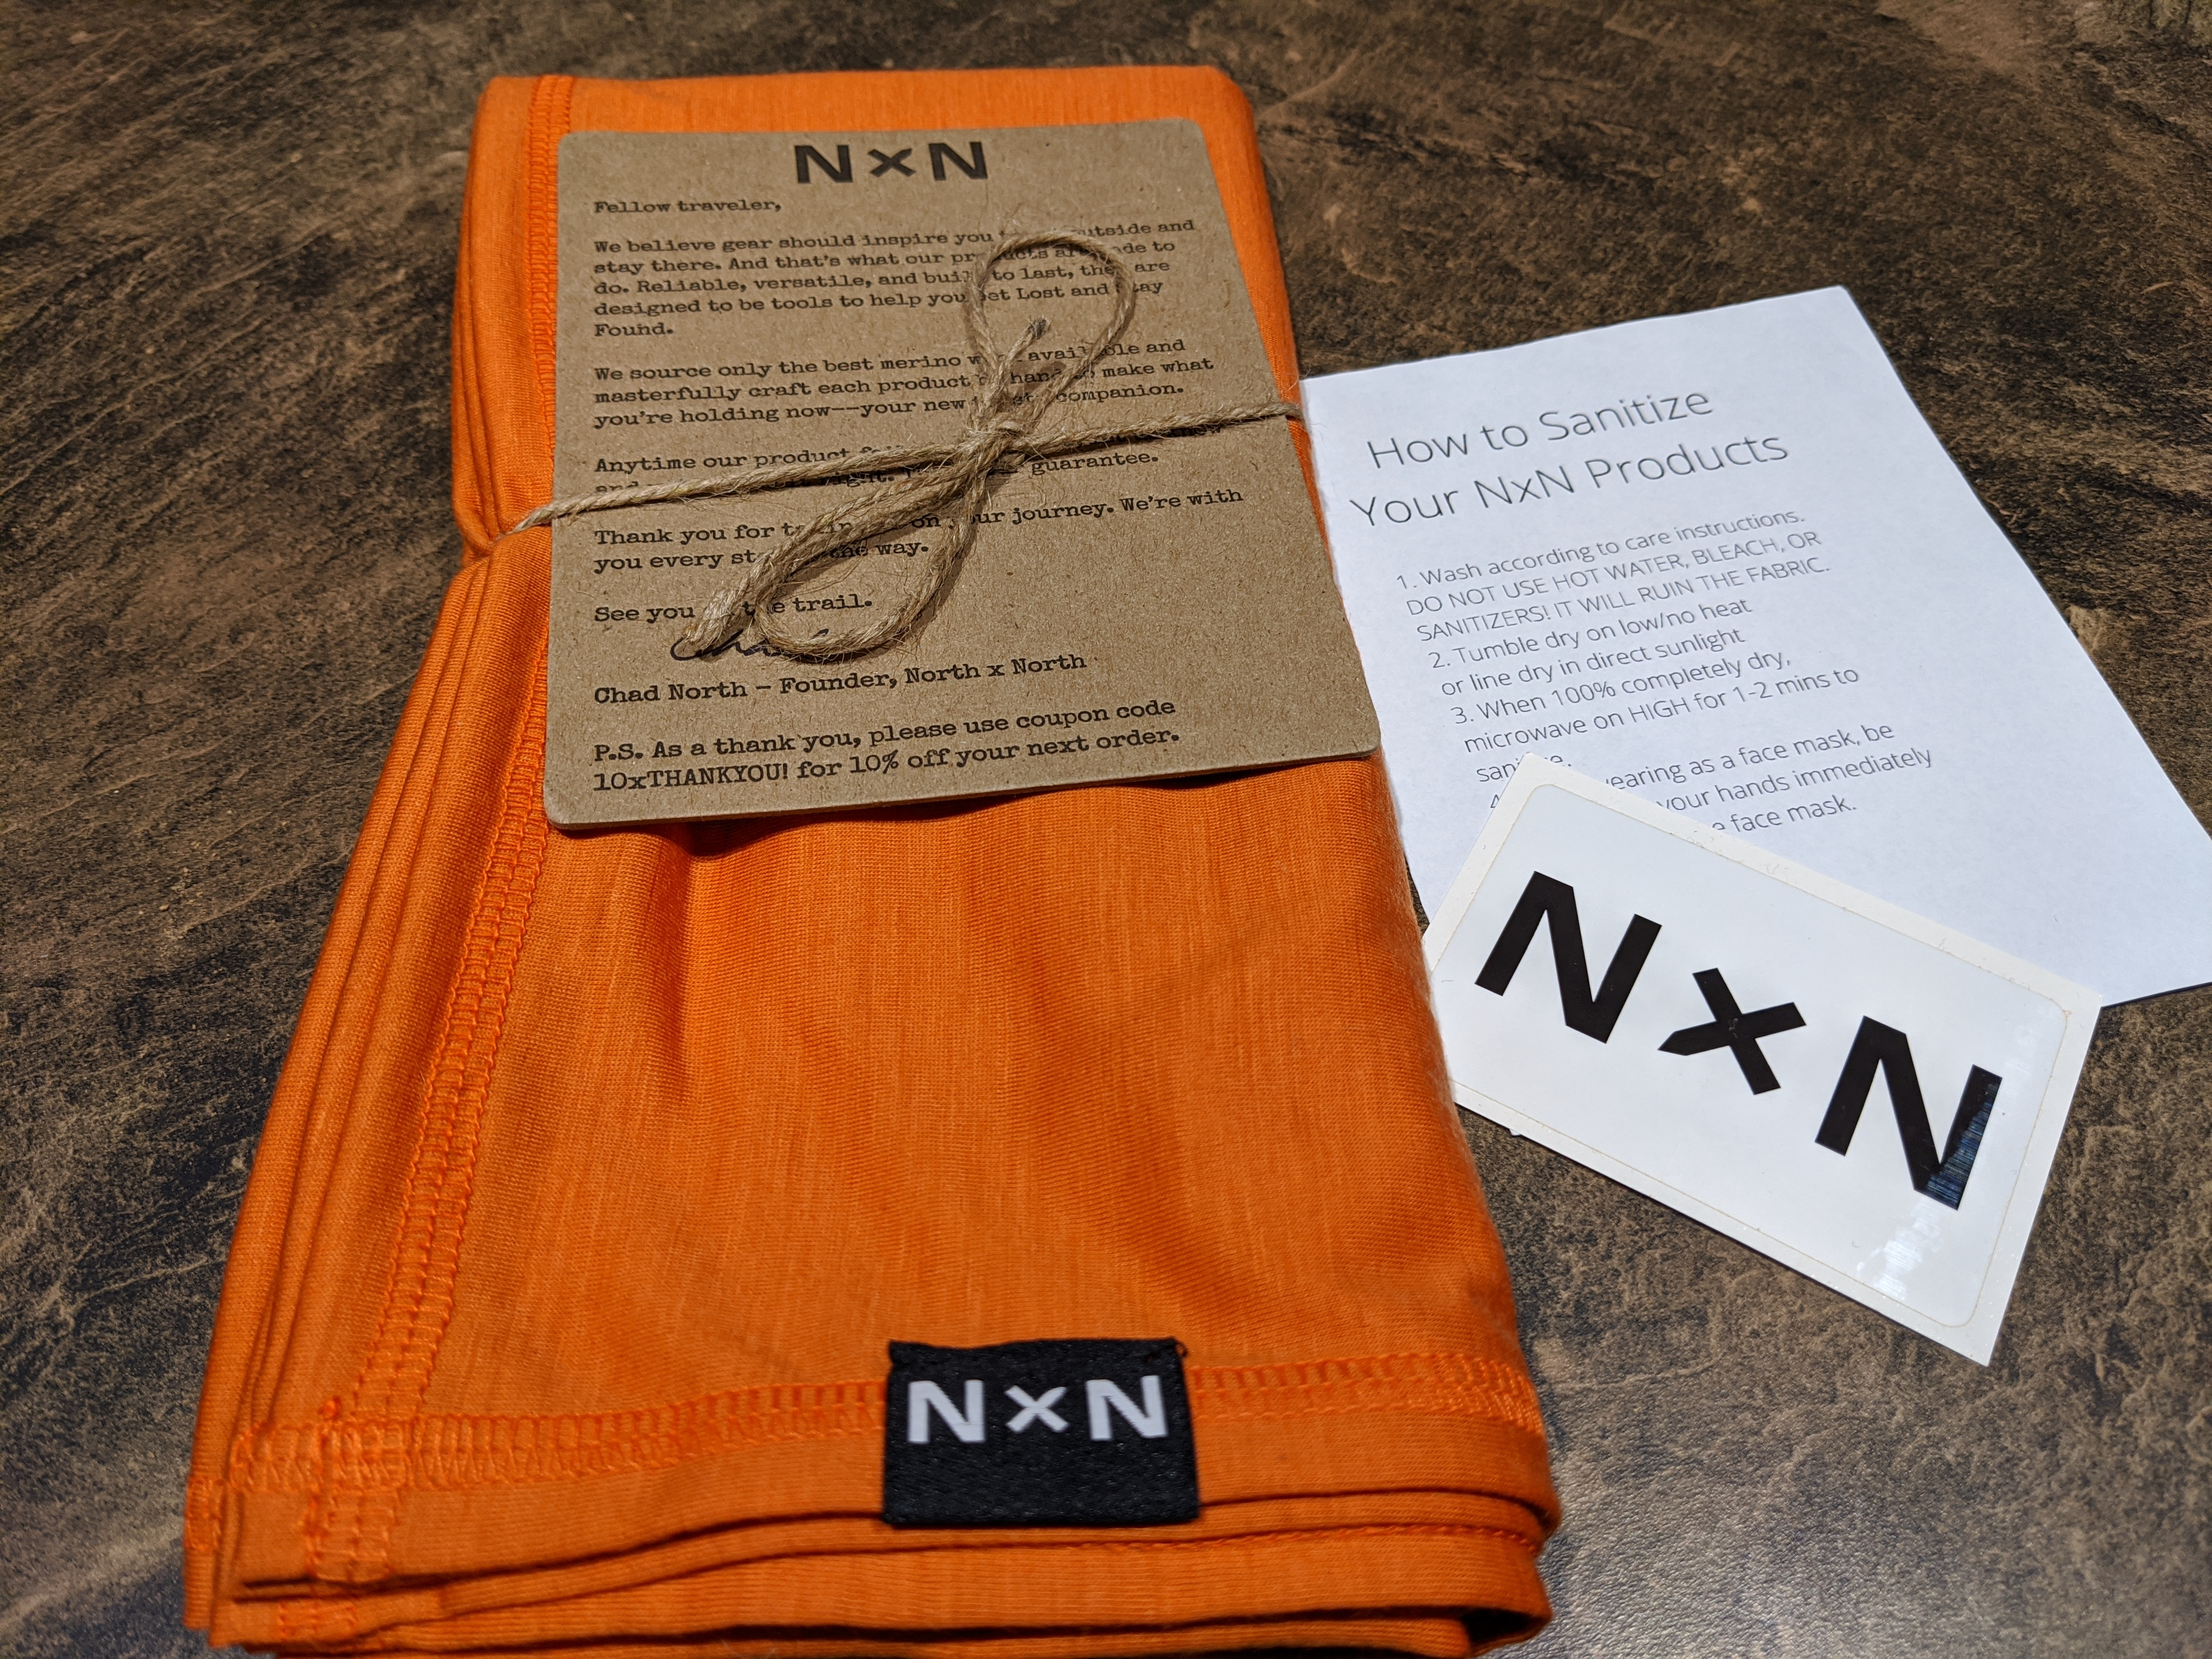 The Merino wool kerchief in cayenne arrived neatly packaged with care instructions and sticker.